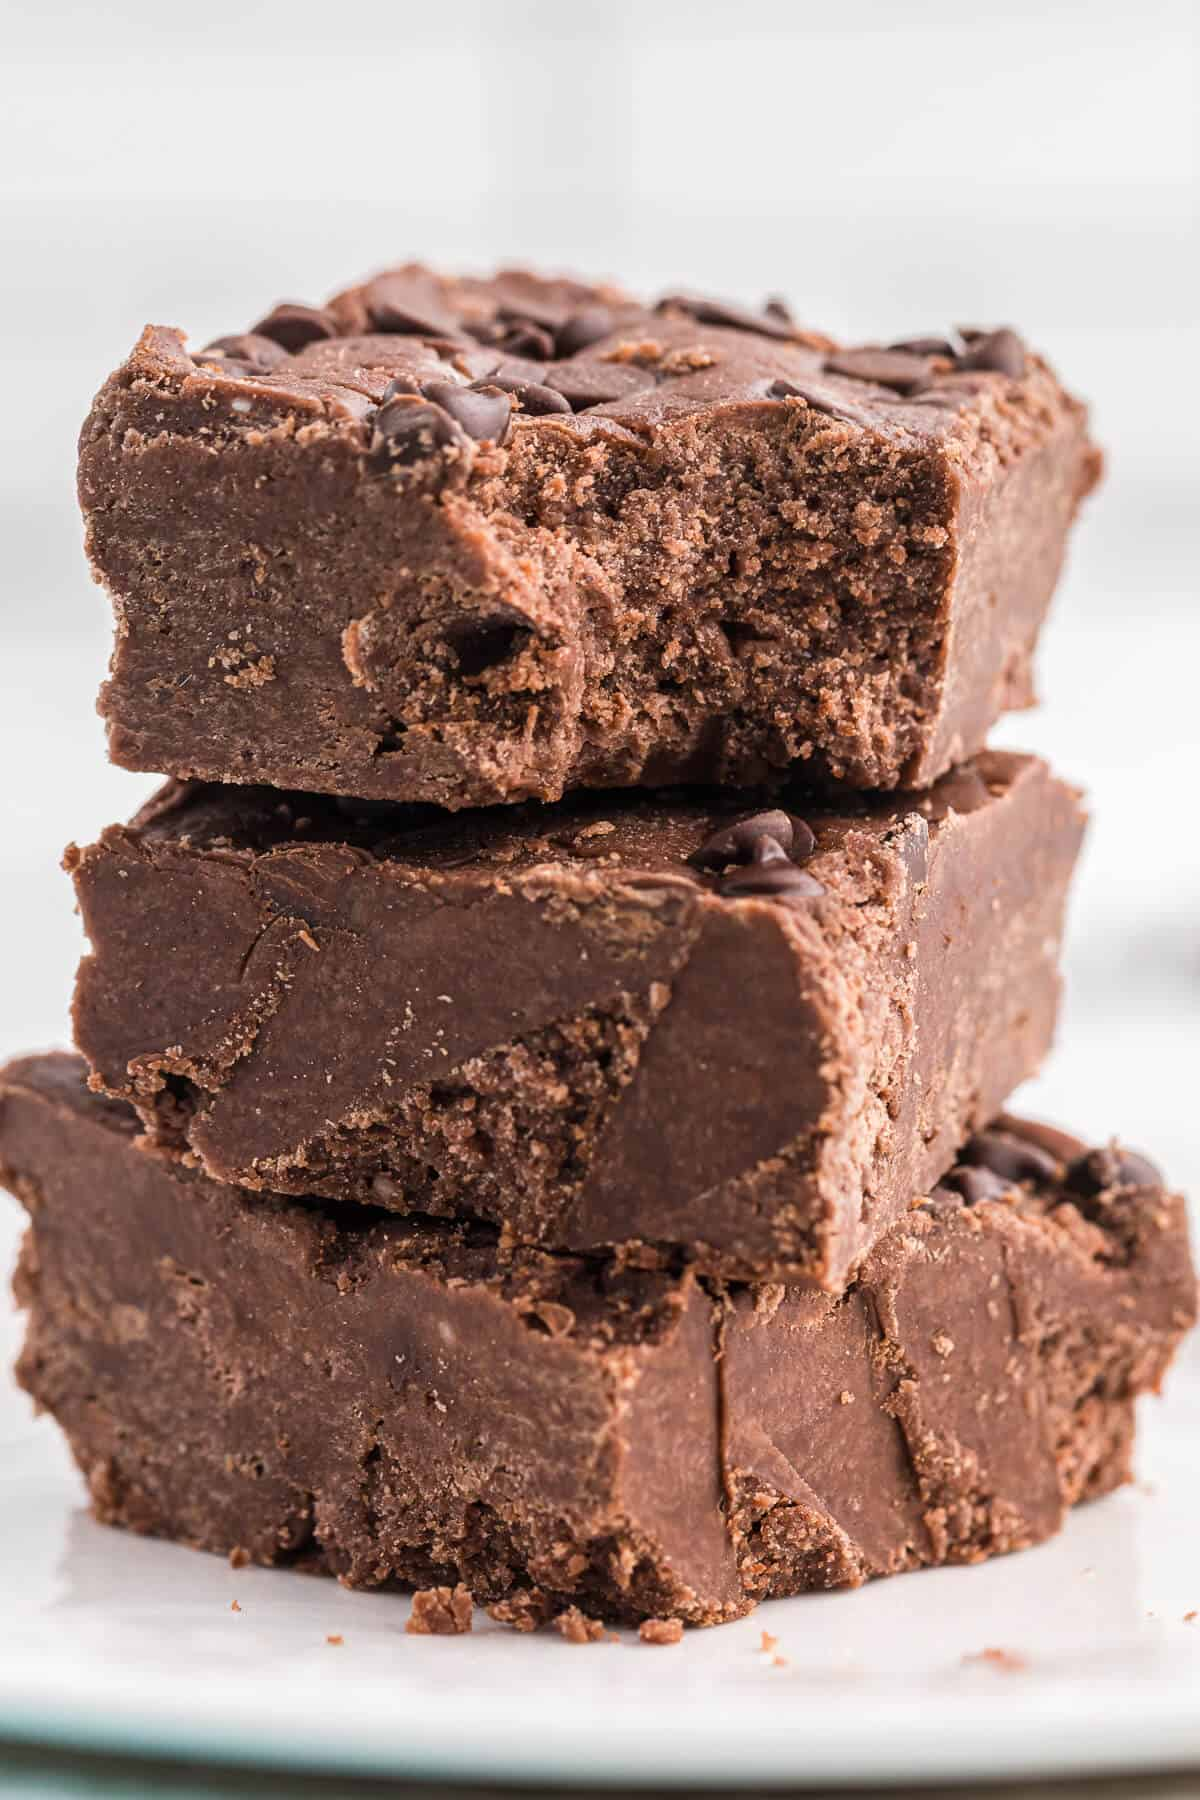 Chocolate Cake Batter Fudge - This easy fudge recipe is no bake and made with a box of cake mix. Each bite is rich and fudgy!